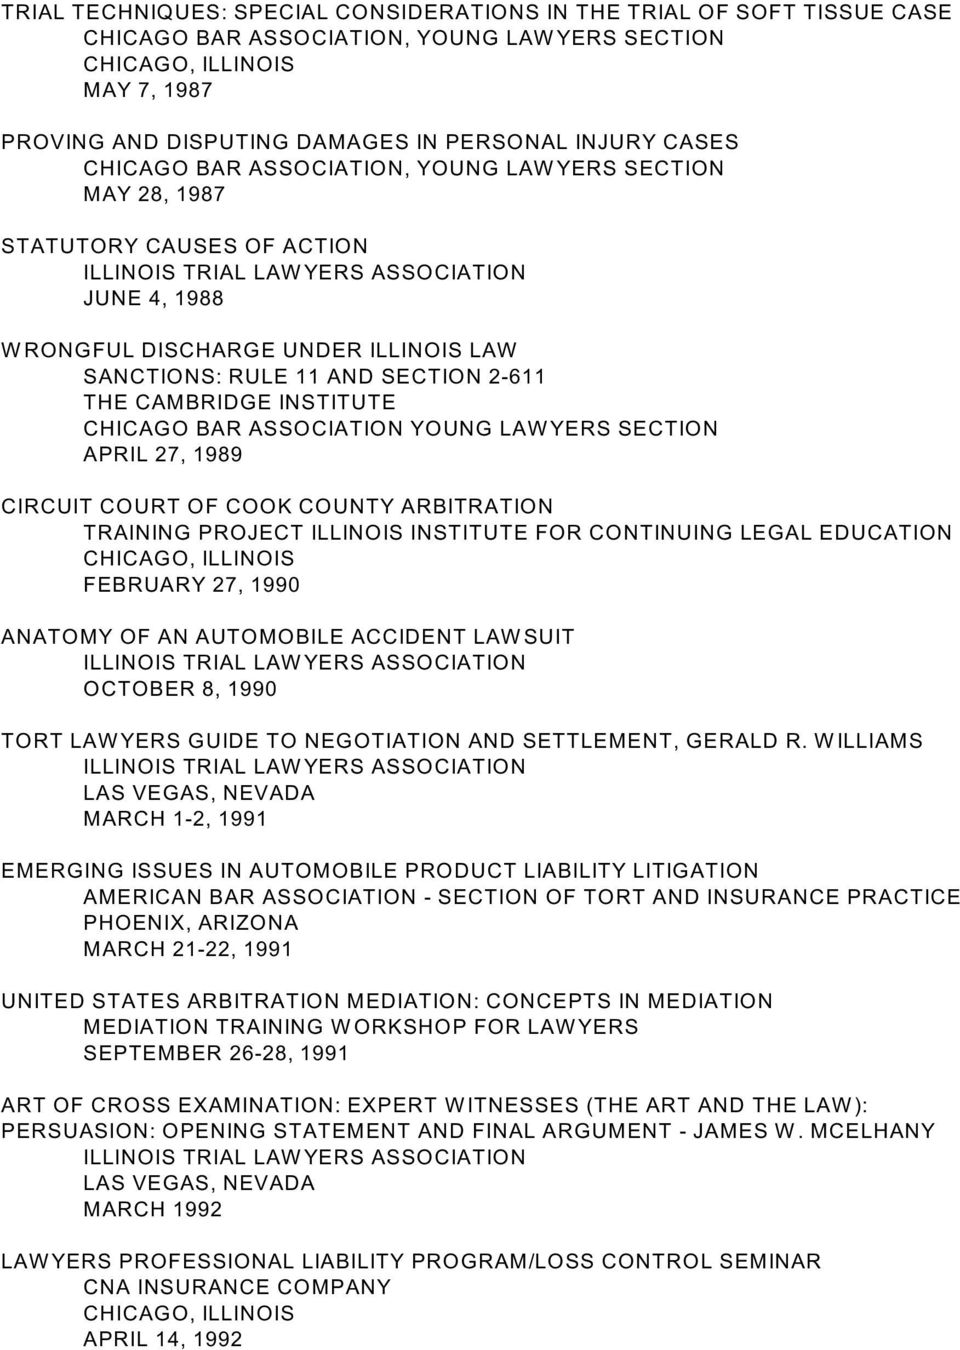 COOK COUNTY ARBITRATION TRAINING PROJECT ILLINOIS INSTITUTE FOR CONTINUING LEGAL EDUCATION FEBRUARY 27, 1990 ANATOMY OF AN AUTOMOBILE ACCIDENT LAW SUIT OCTOBER 8, 1990 TORT LAW YERS GUIDE TO